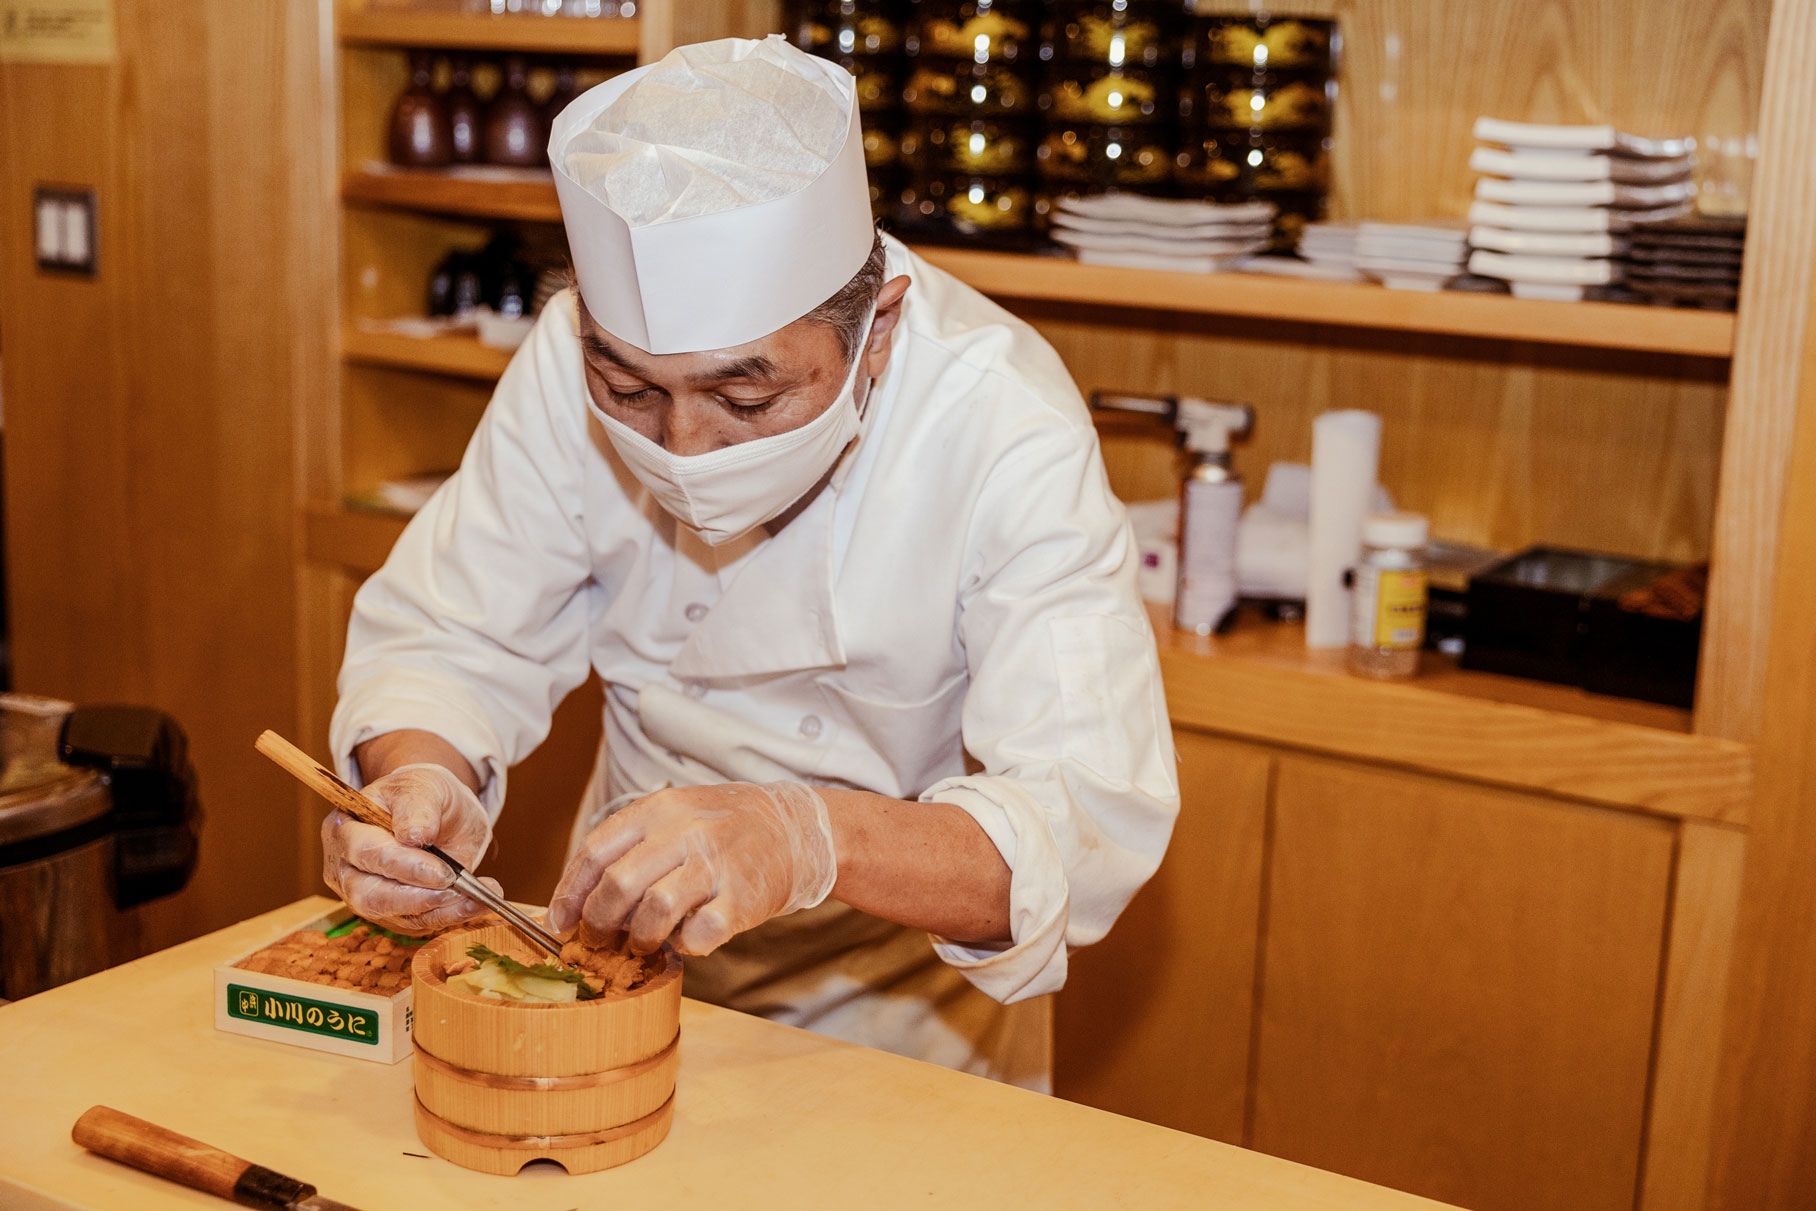 A chef delicately plating an ornate dish.